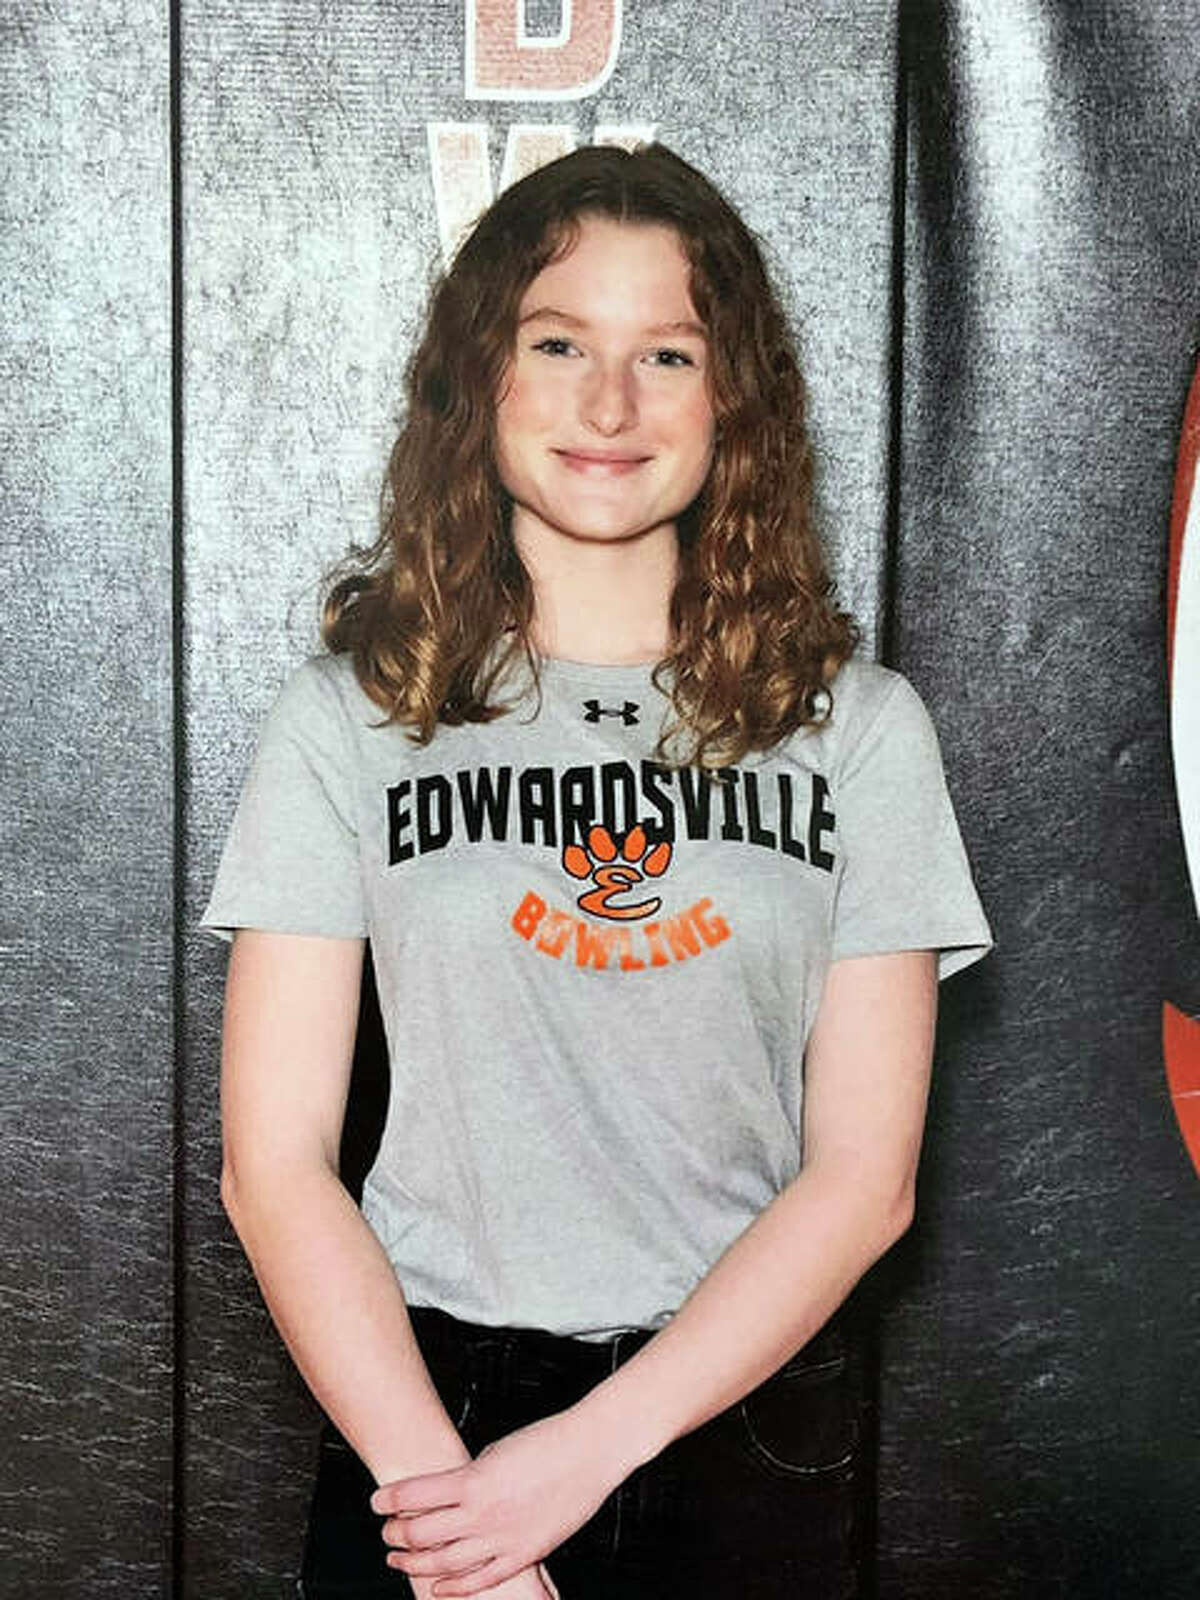 Junior Ashley Kuethe had a team-high 173 average for the Edwardsville girls bowling team in 2021.